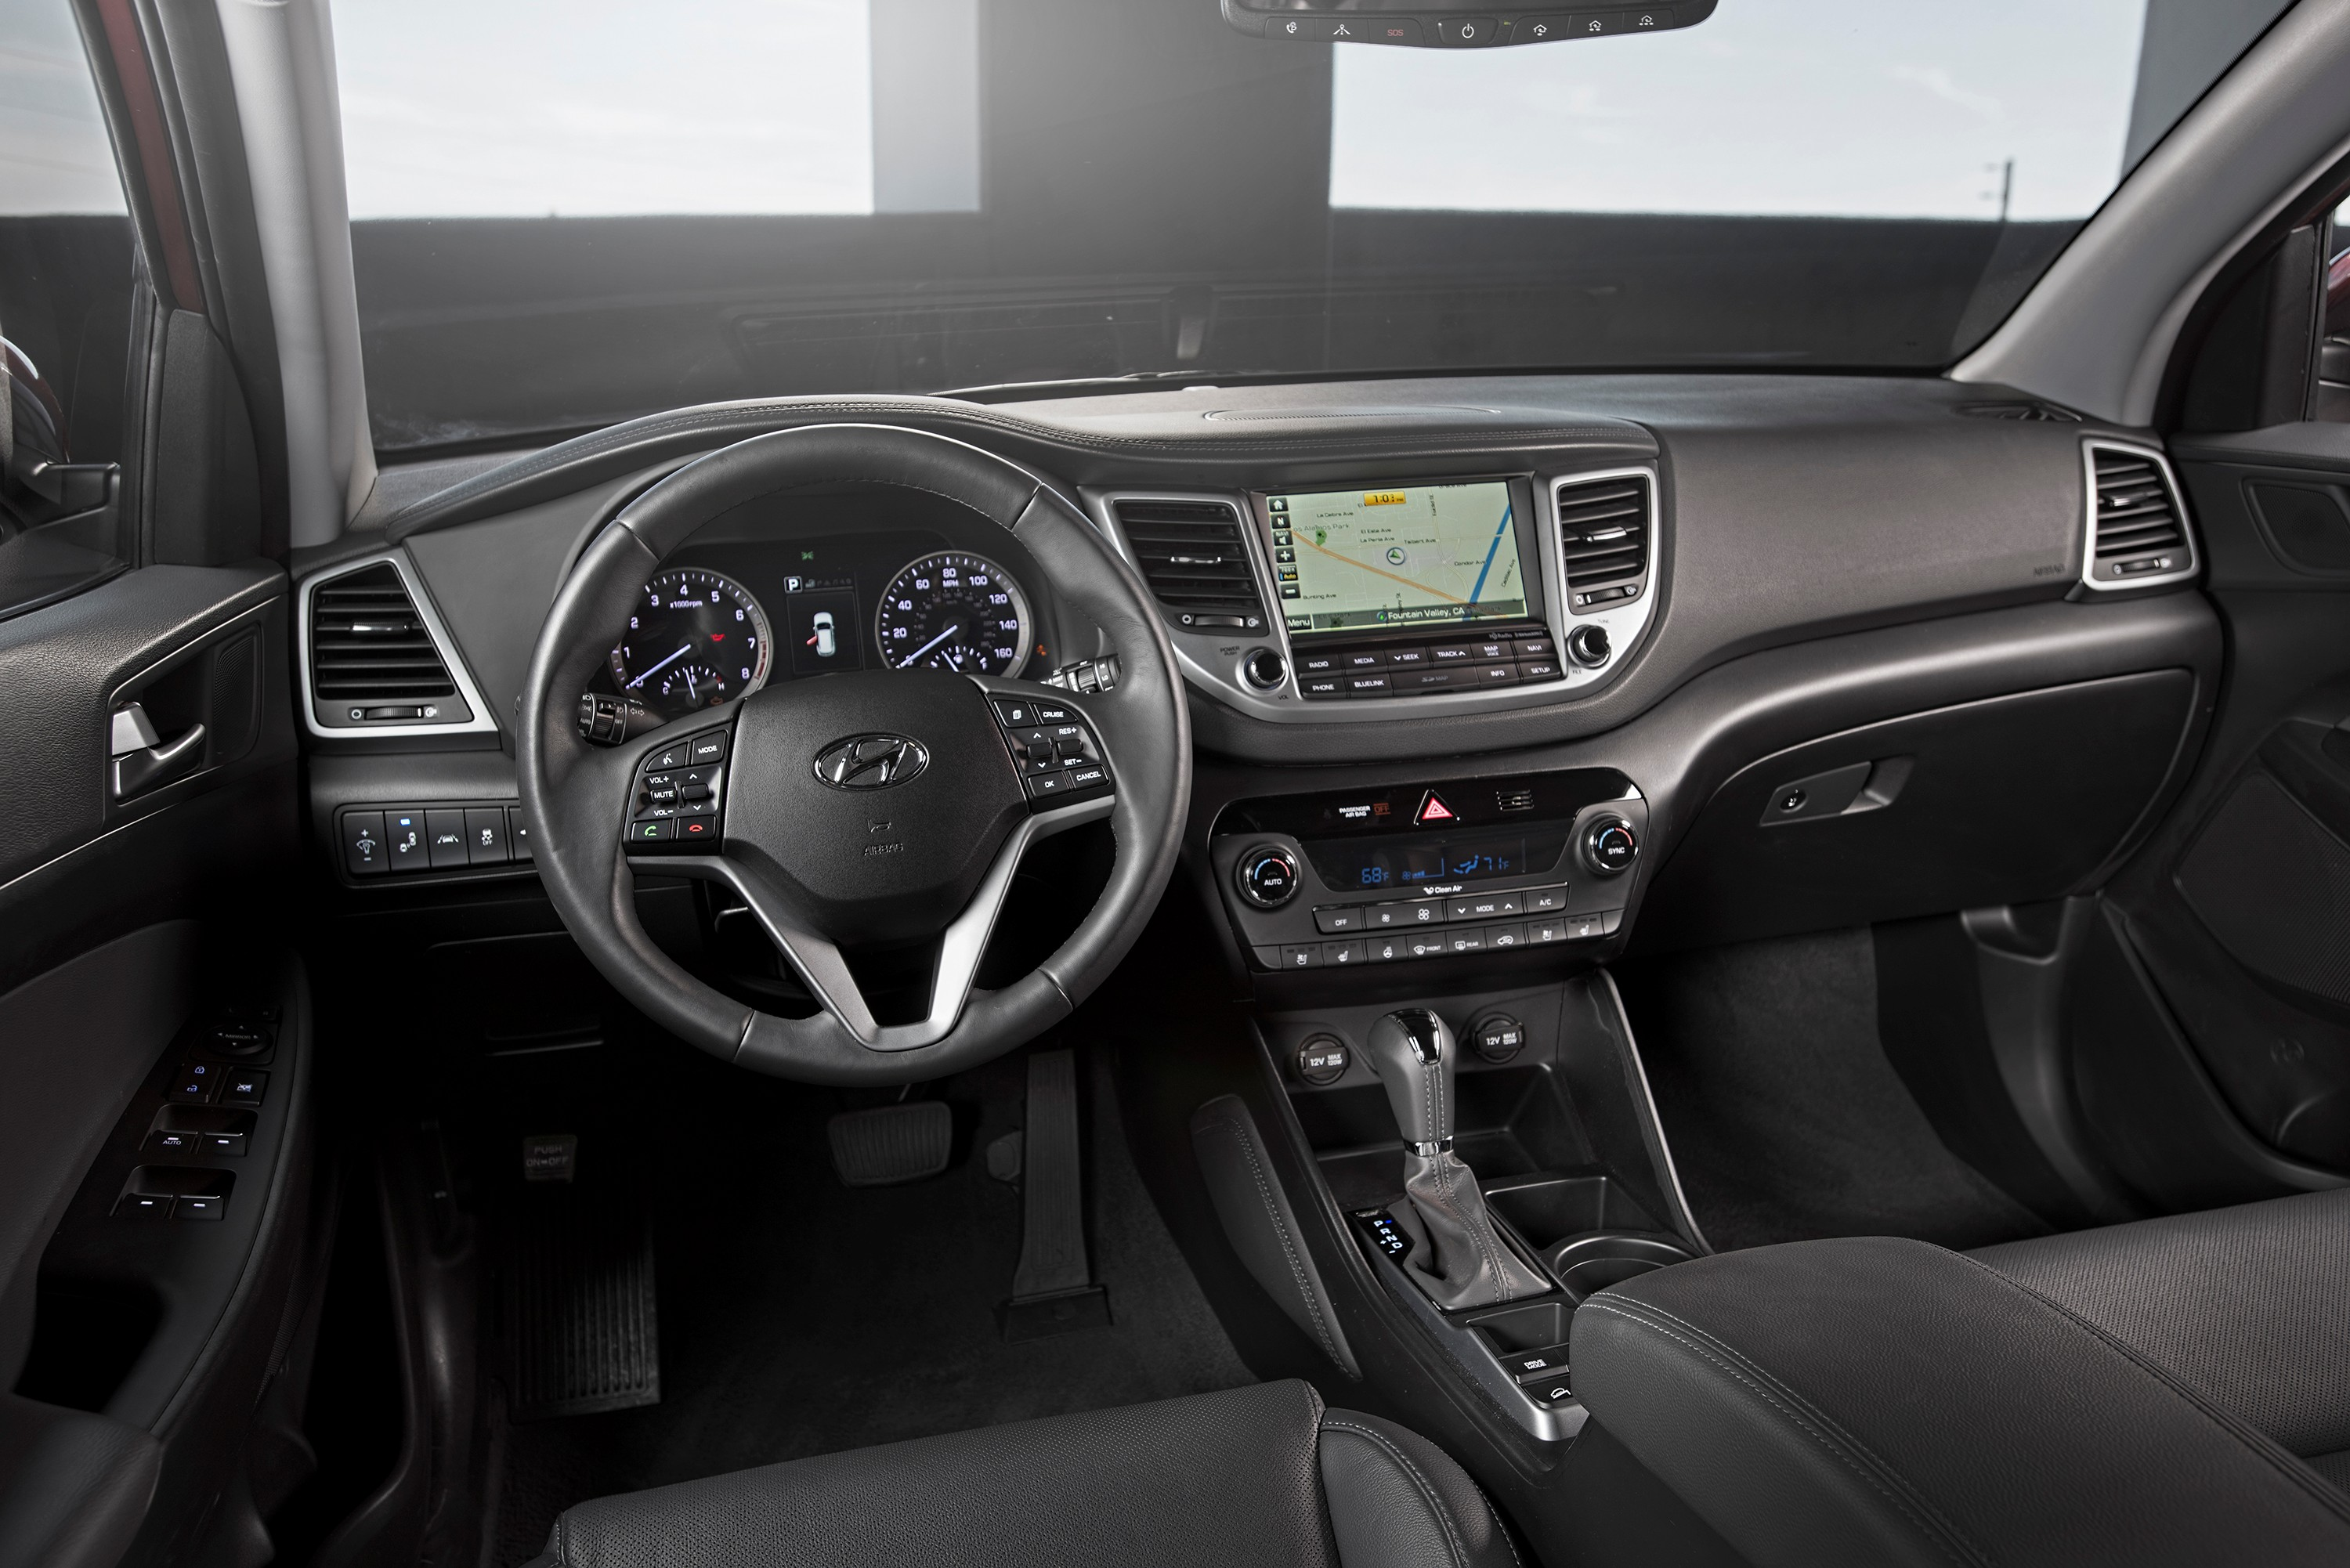 The 2017 Tucson Interior With Android Auto